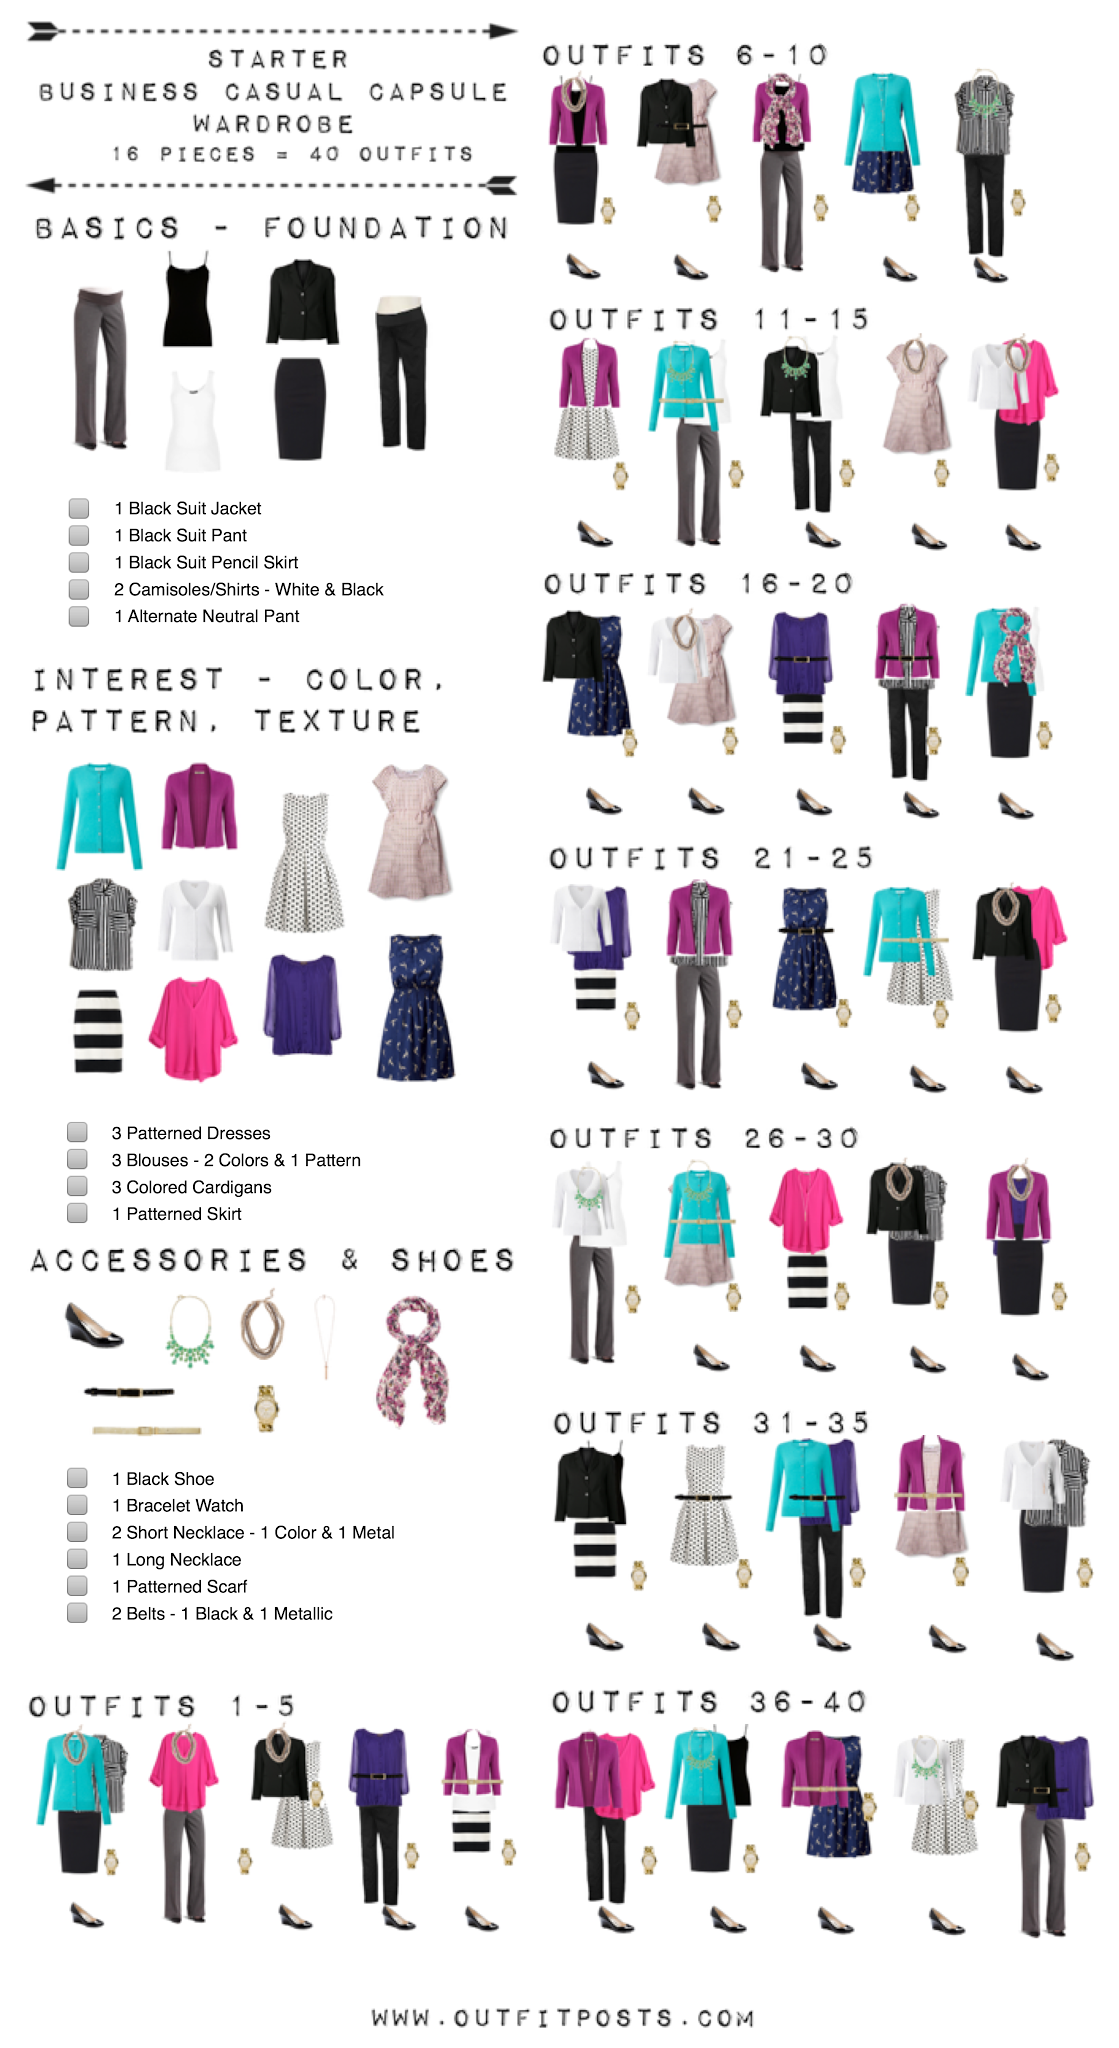 starter business casual capsule wardrobe checklist outfit posts. Black Bedroom Furniture Sets. Home Design Ideas